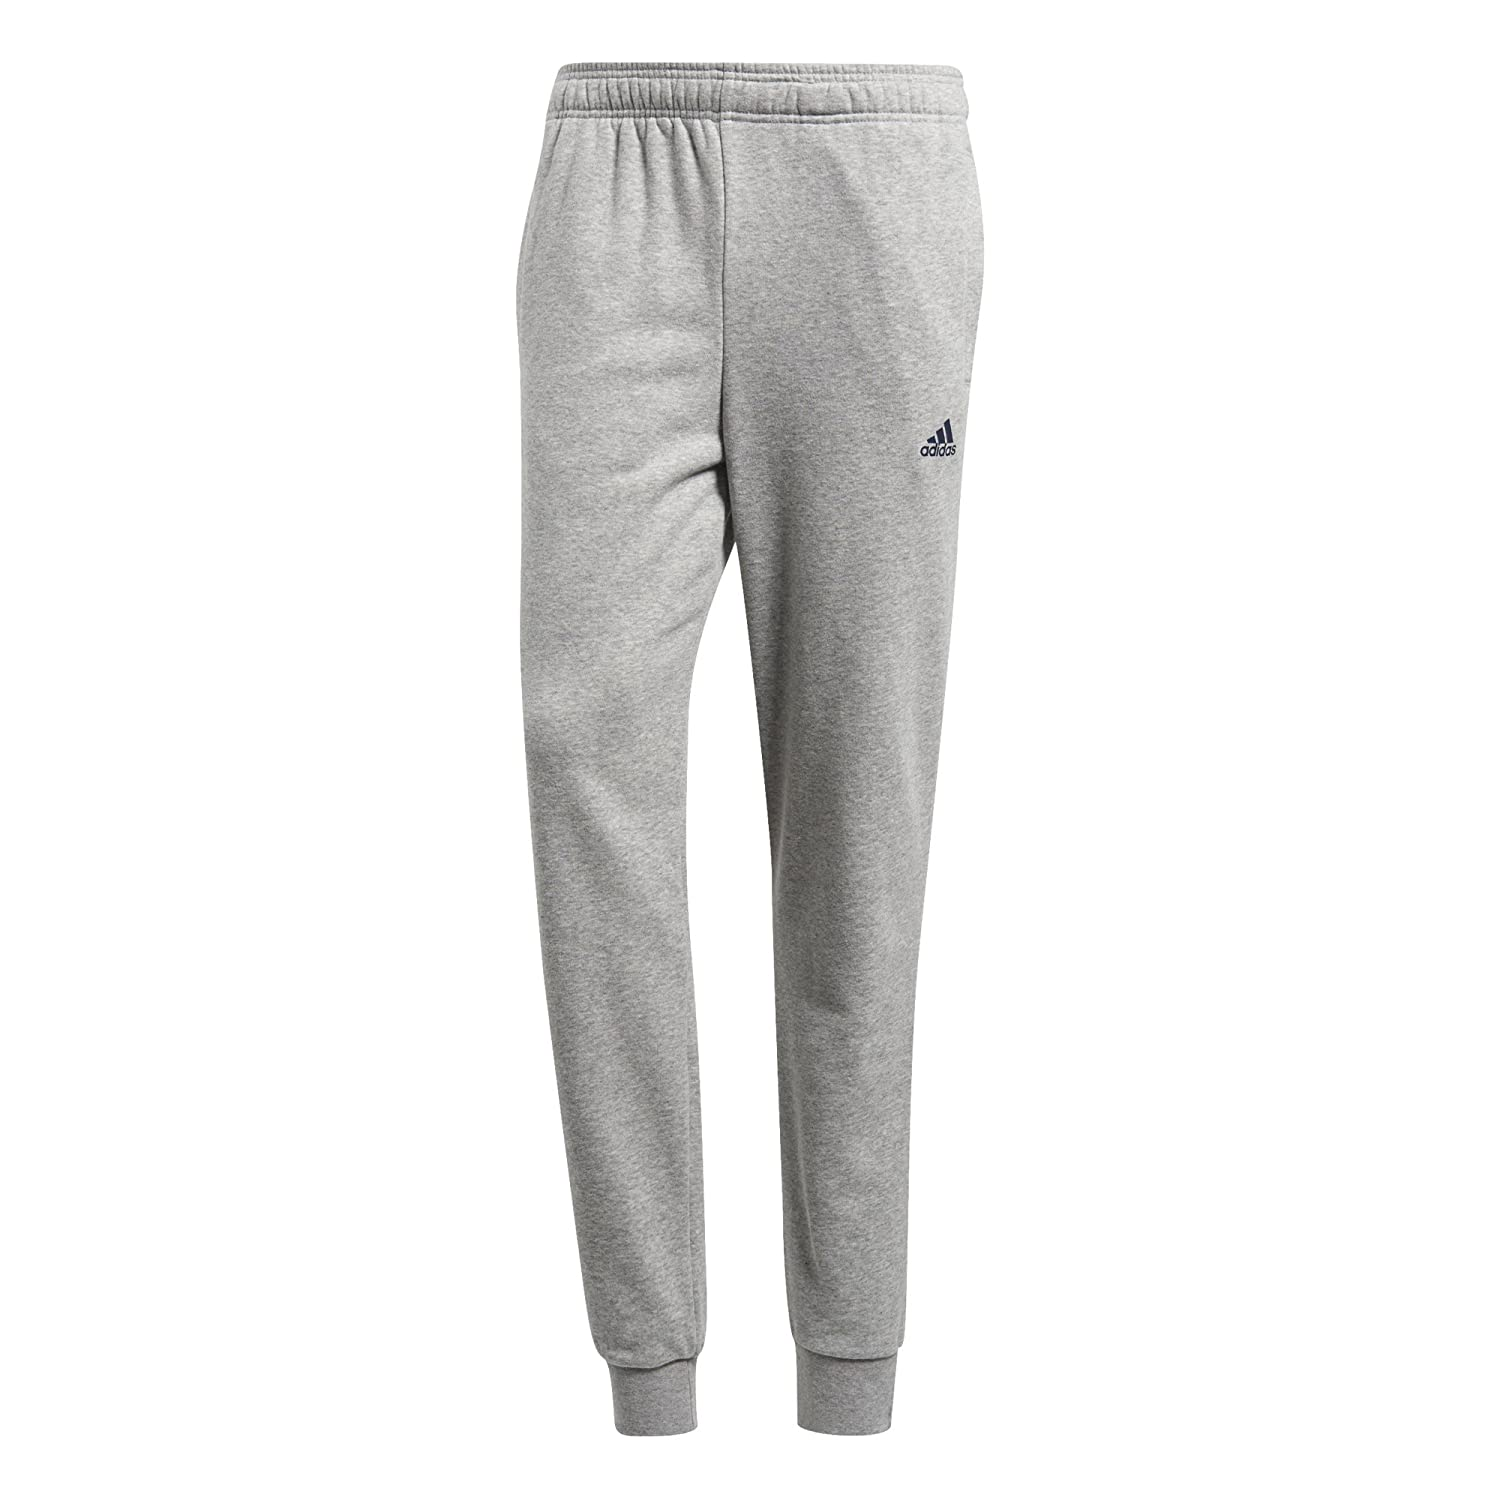 Adidas Men's Essentials French Terry Pants